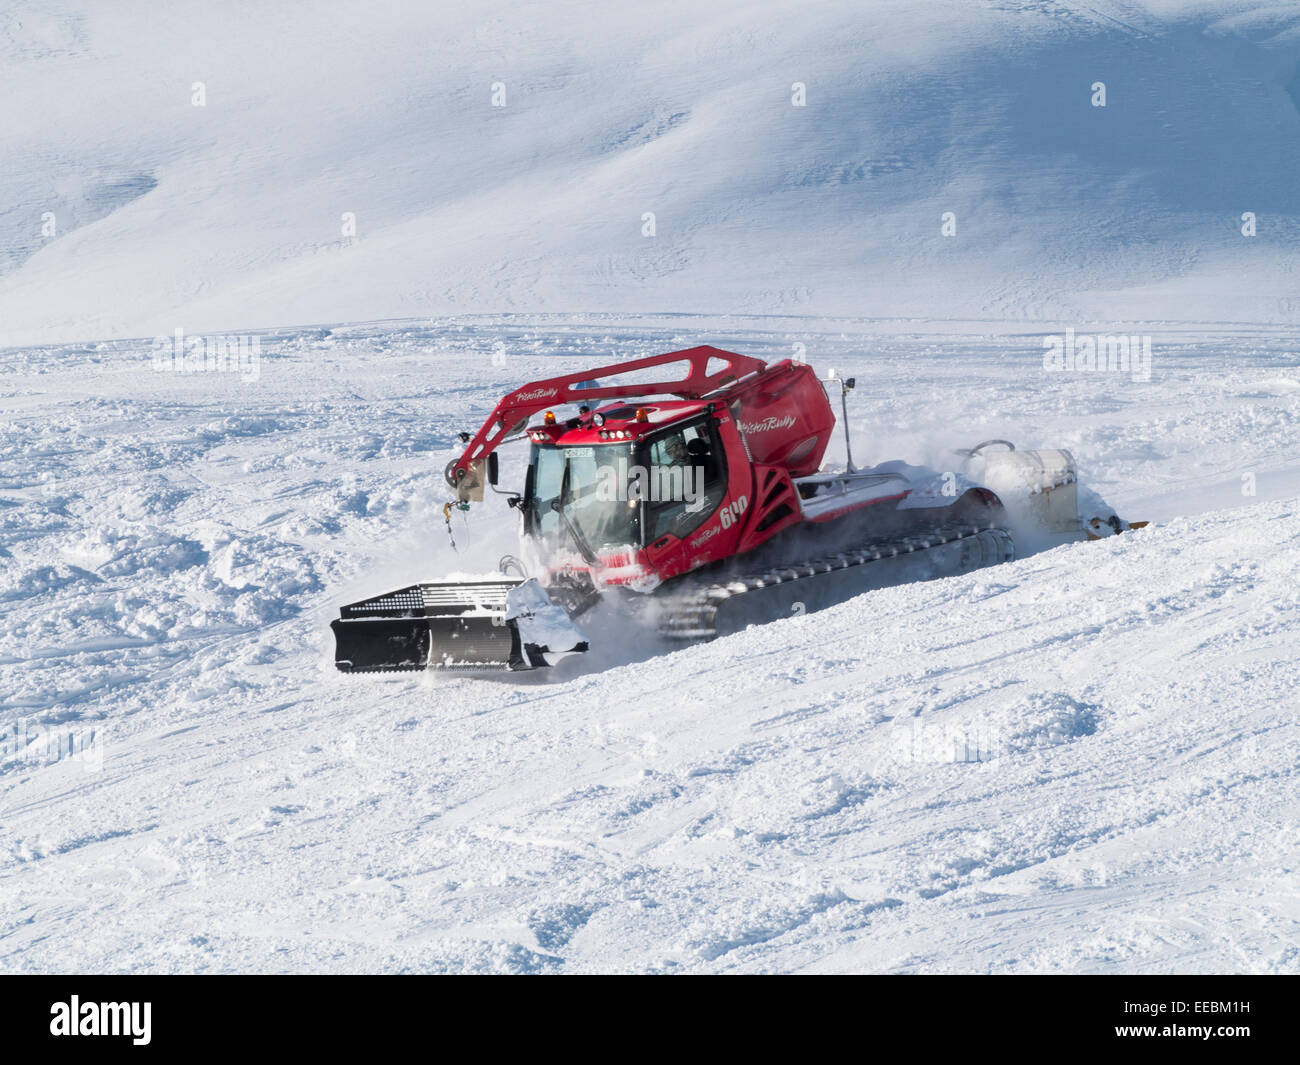 Snow basher or piste grooming bully caterpillar tracked vehicle moving quickly on ski slopes. St Anton am Arlberg Stock Photo